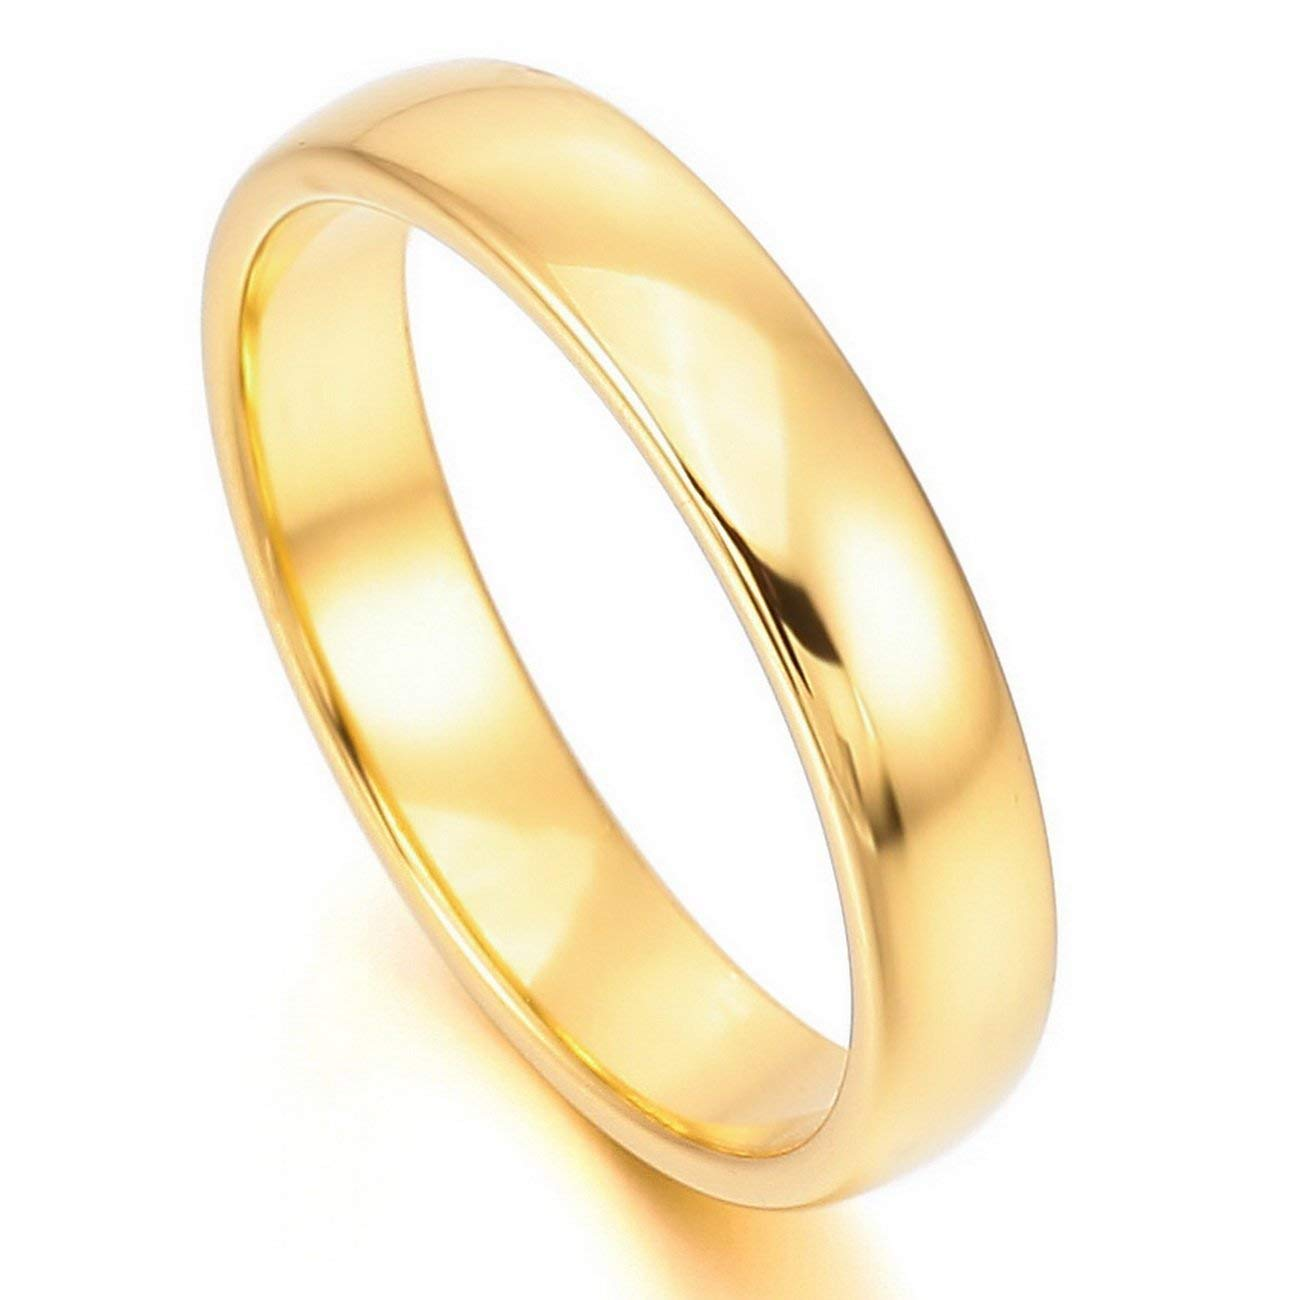 Tianyi Mens 6mm Tungsten Carbide Engagement Rings Two-Tones Polished Wedding Band